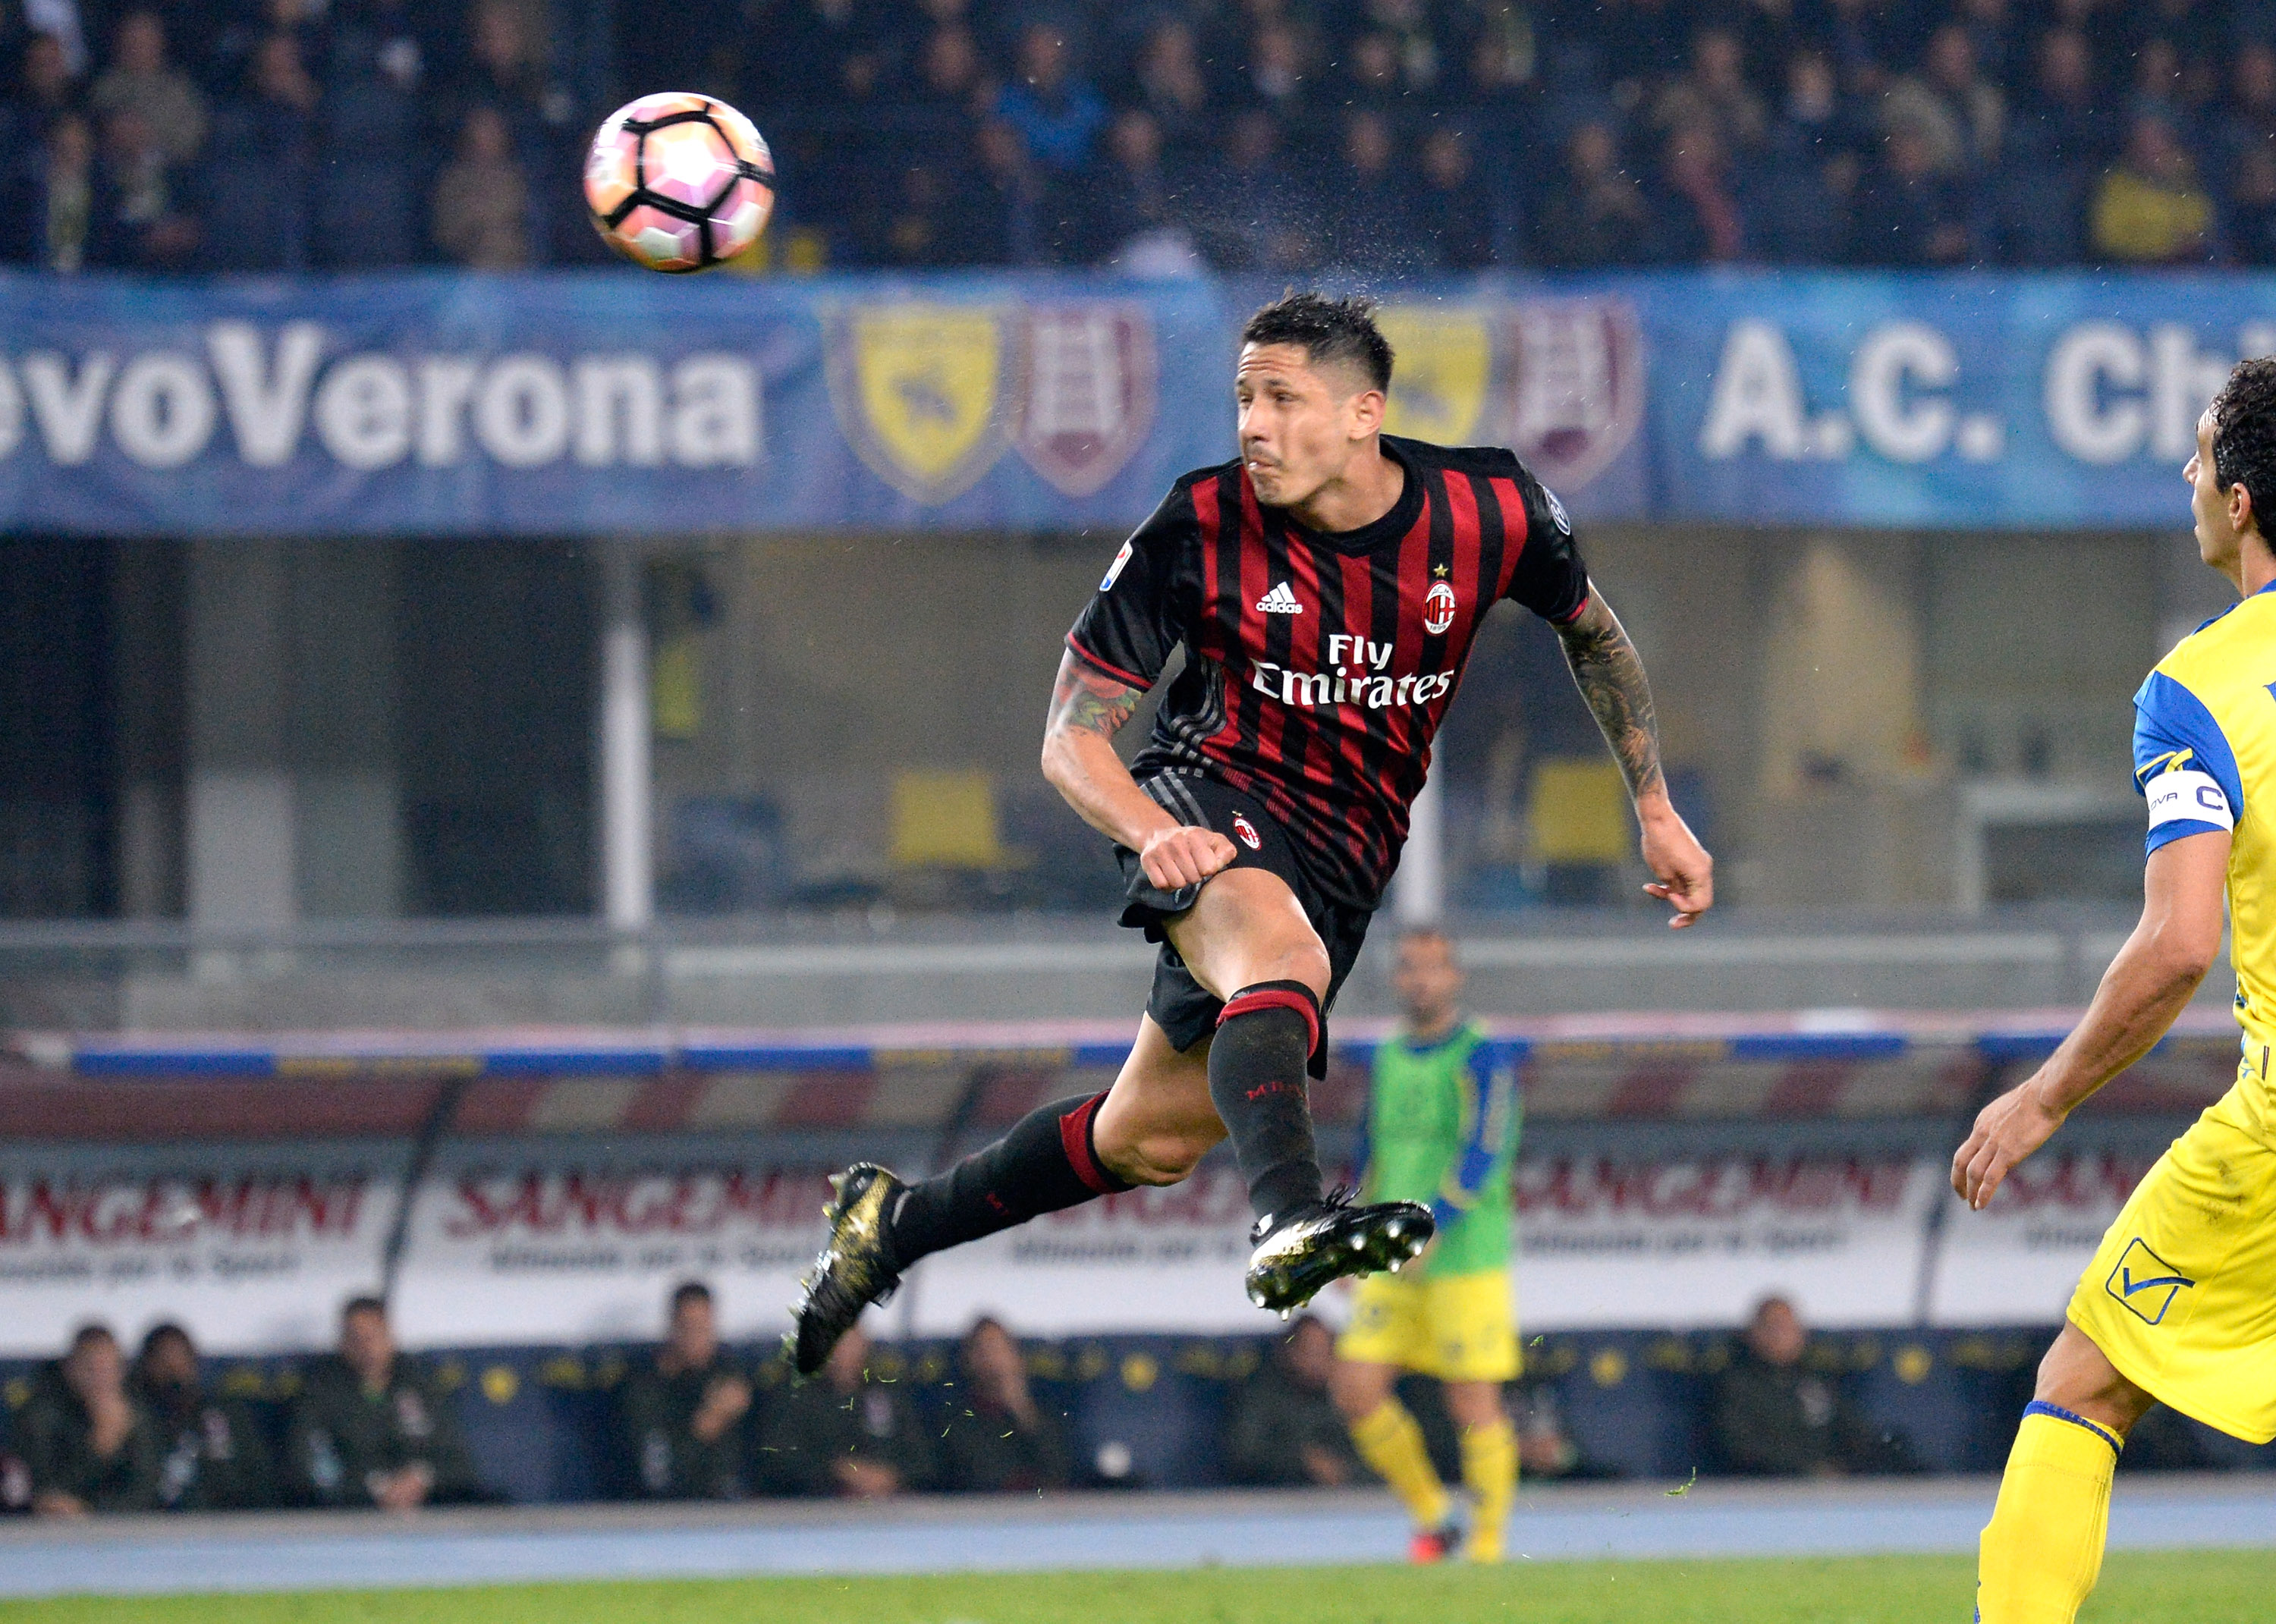 VERONA, ITALY - OCTOBER 16: Gianluca Lapadula of AC Milan in action during the Serie A match between AC ChievoVerona and AC Milan at Stadio Marc'Antonio Bentegodi on October 16, 2016 in Verona, Italy. (Photo by Dino Panato/Getty Images)